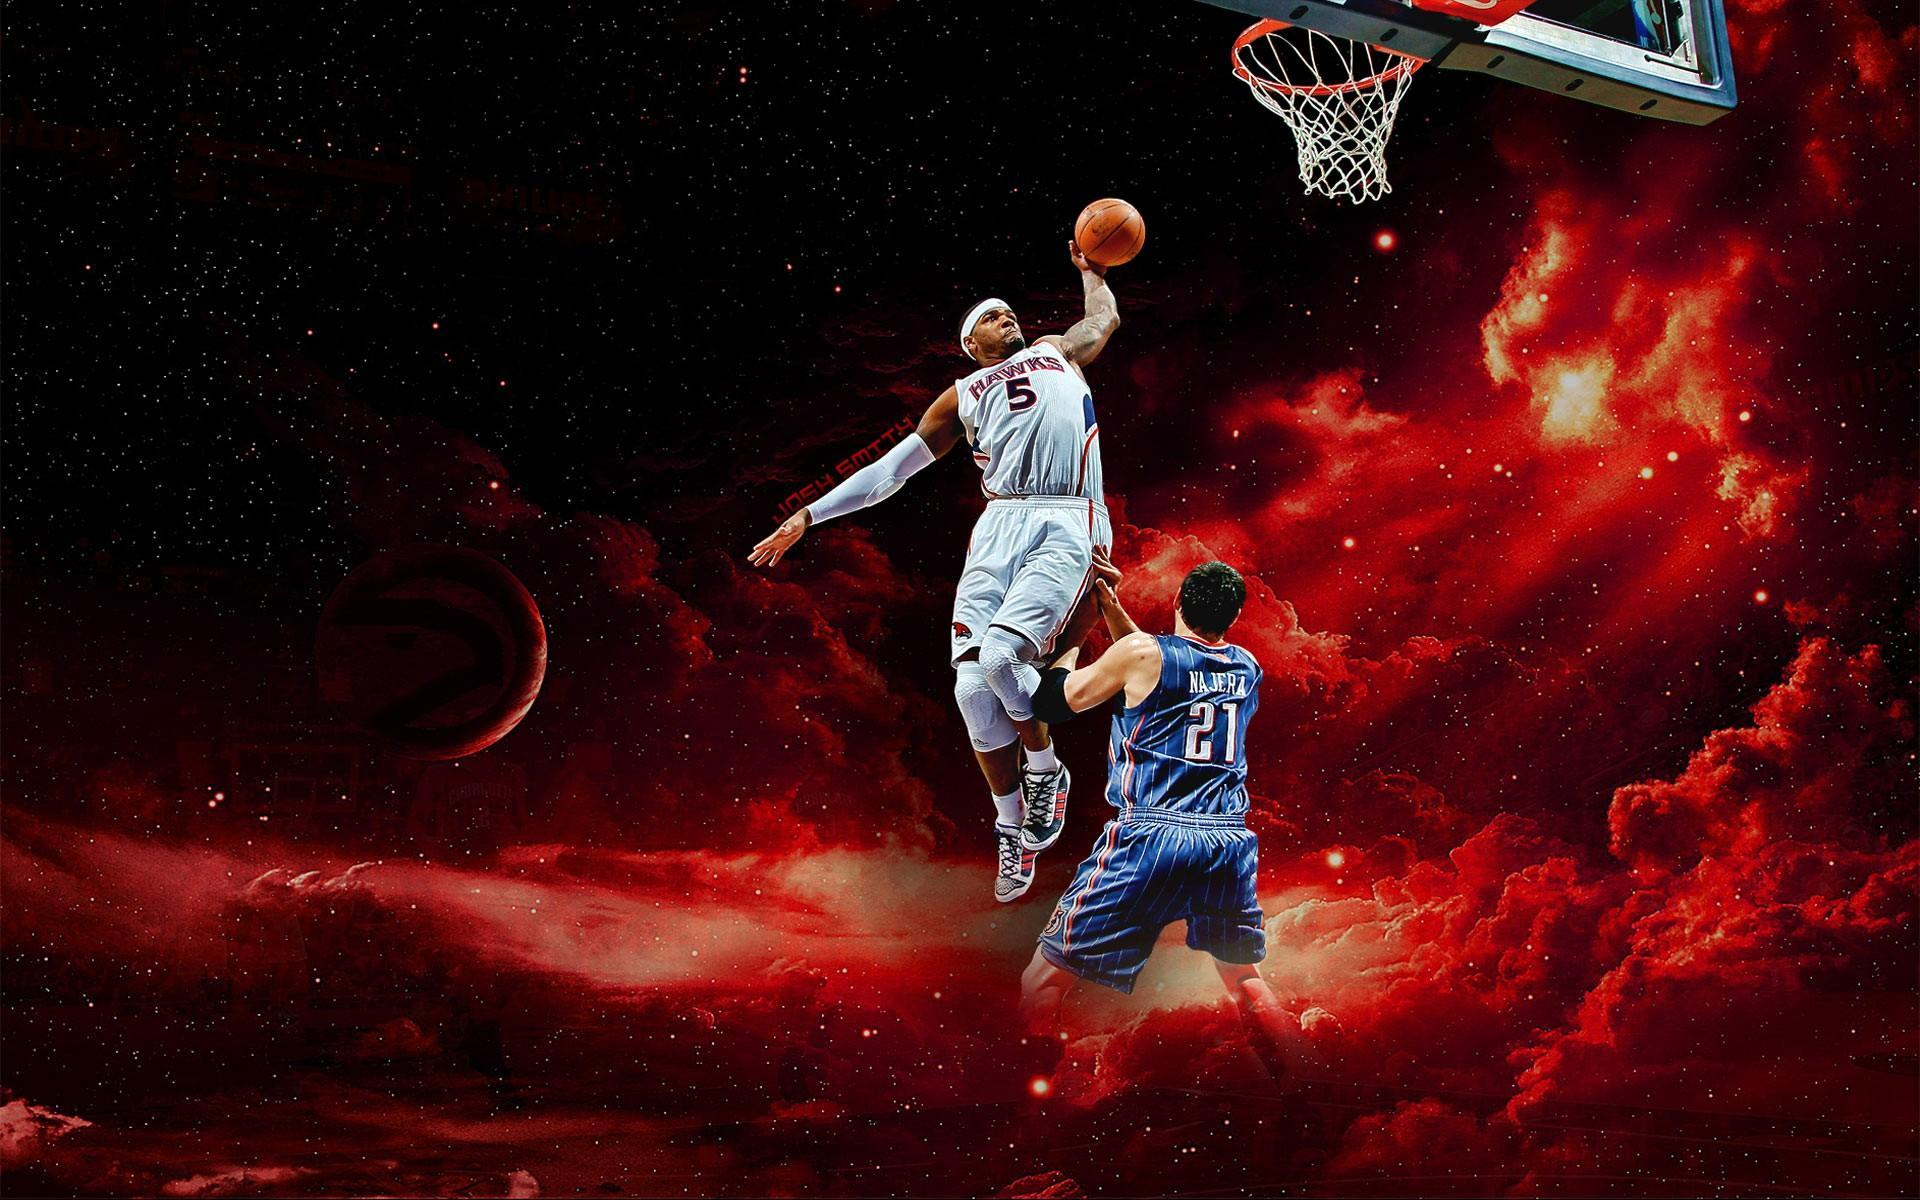 NBA Wallpapers HD Nba 4k Backgrounds for Android   APK Download 1920x1200